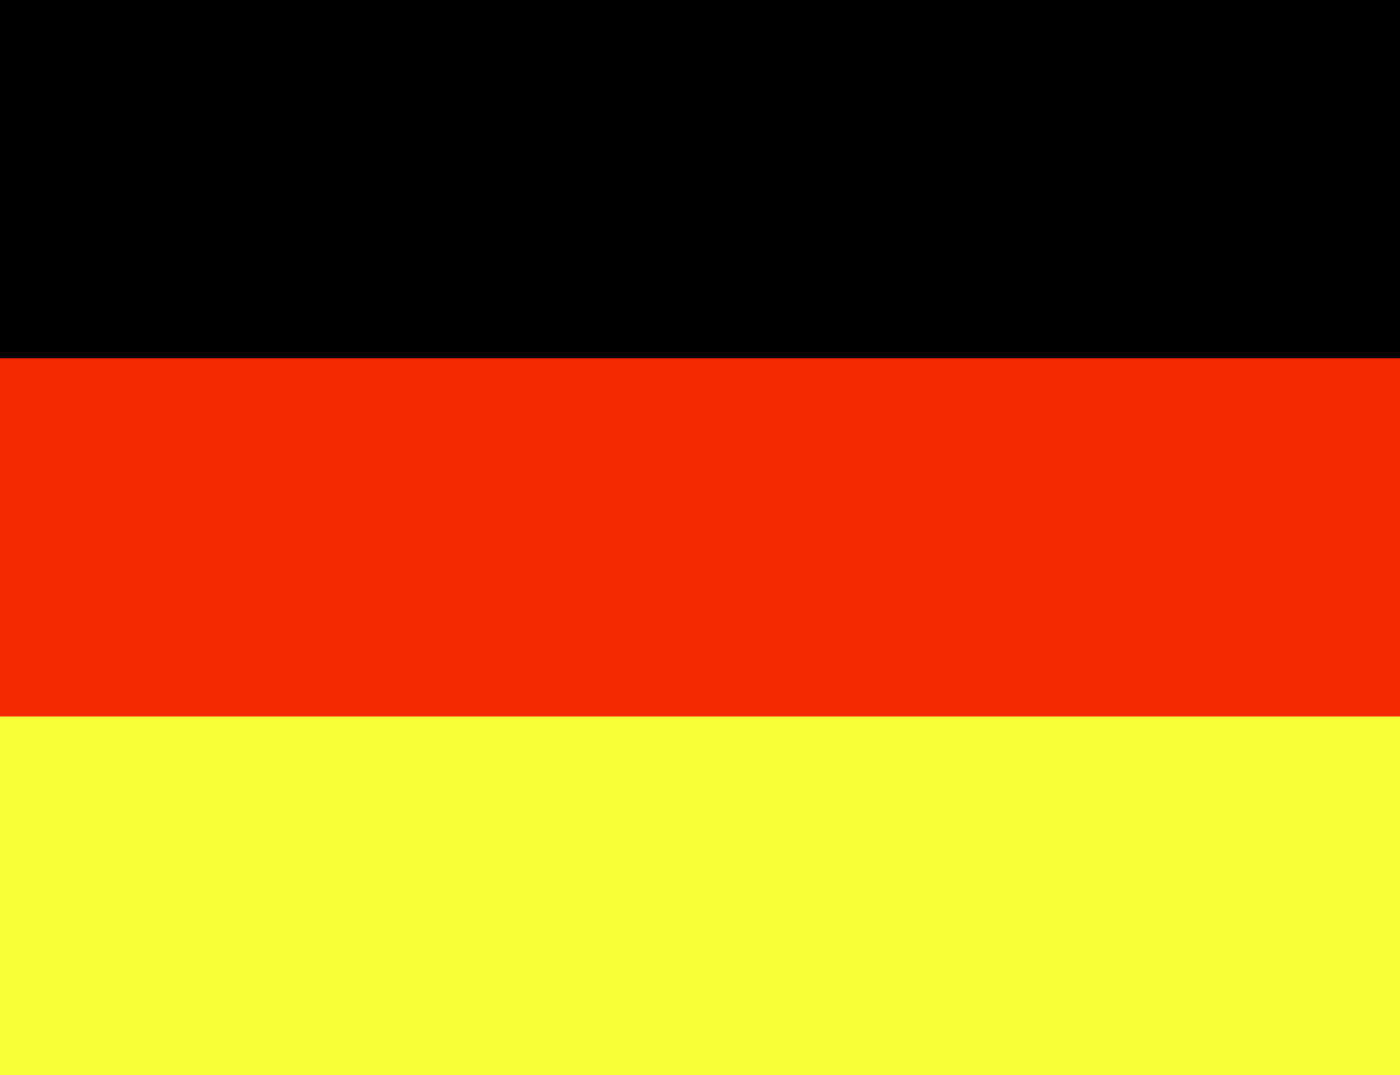 germany-flag-wallpaper-6-.jpg